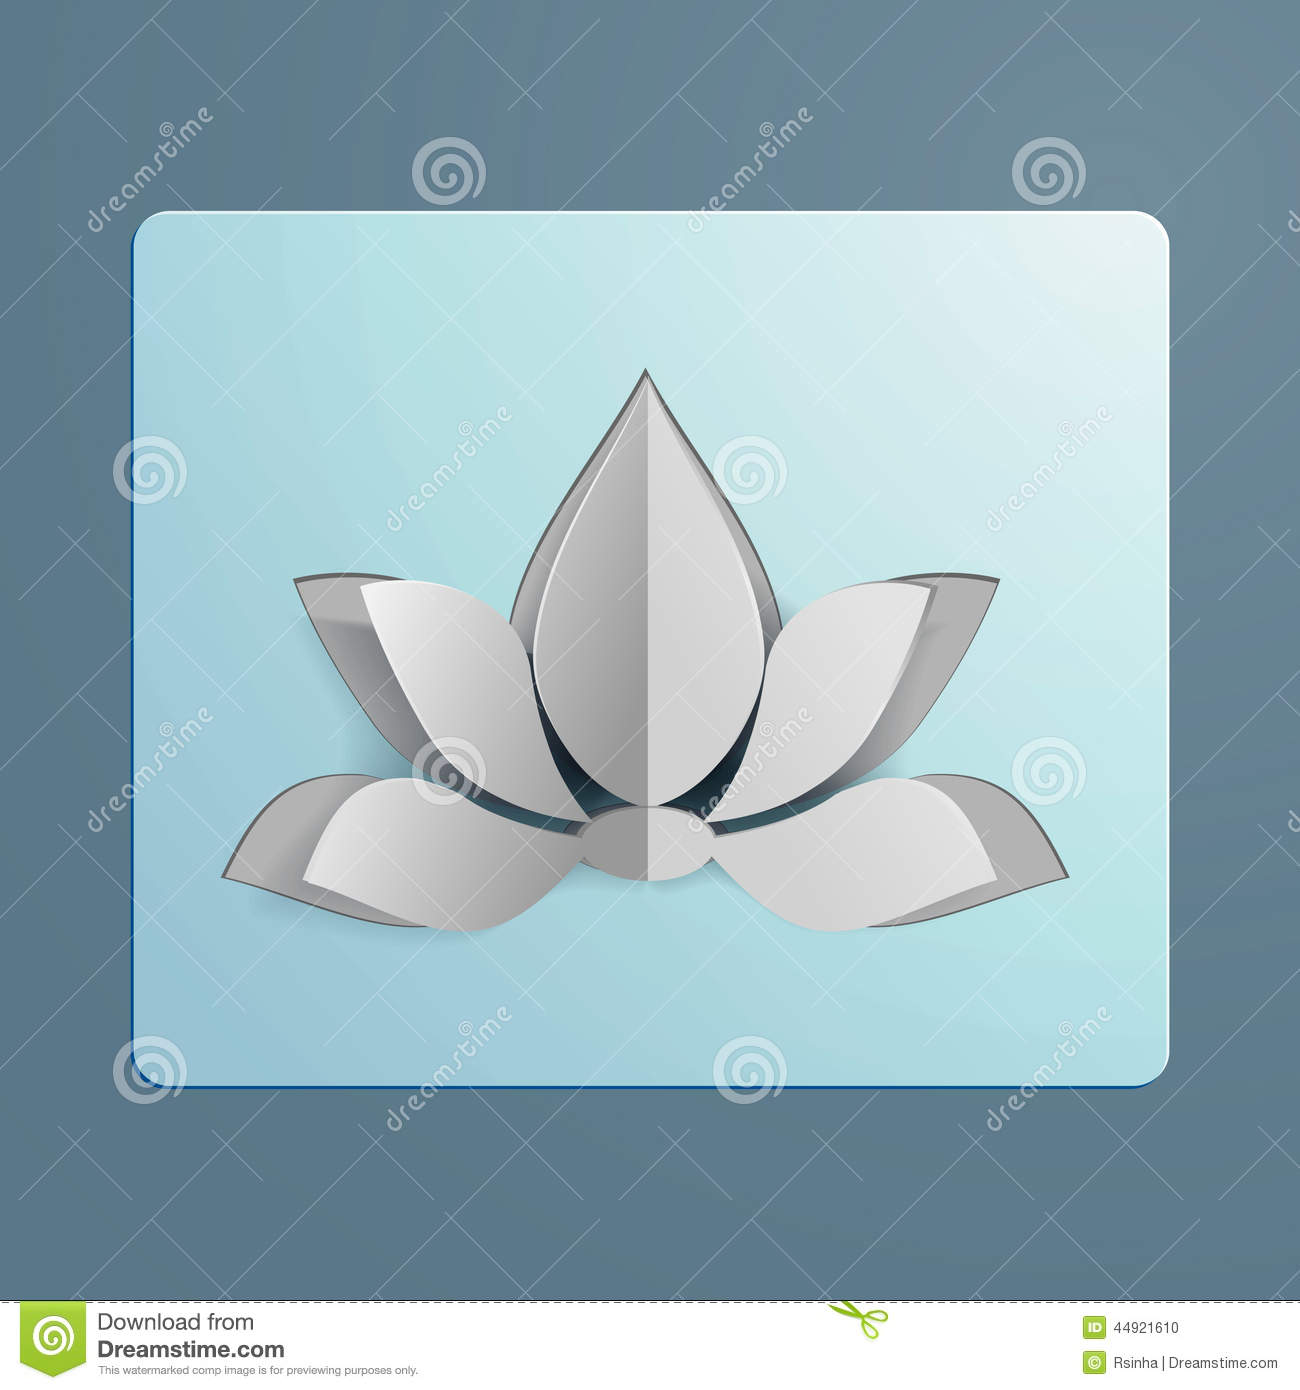 Stylized lotus flower icon understanding terrorism challenges stylized as lotusflow3r is a triple album set and contains the thirty third and thirty fourth studio albums by american recording artist prince izmirmasajfo